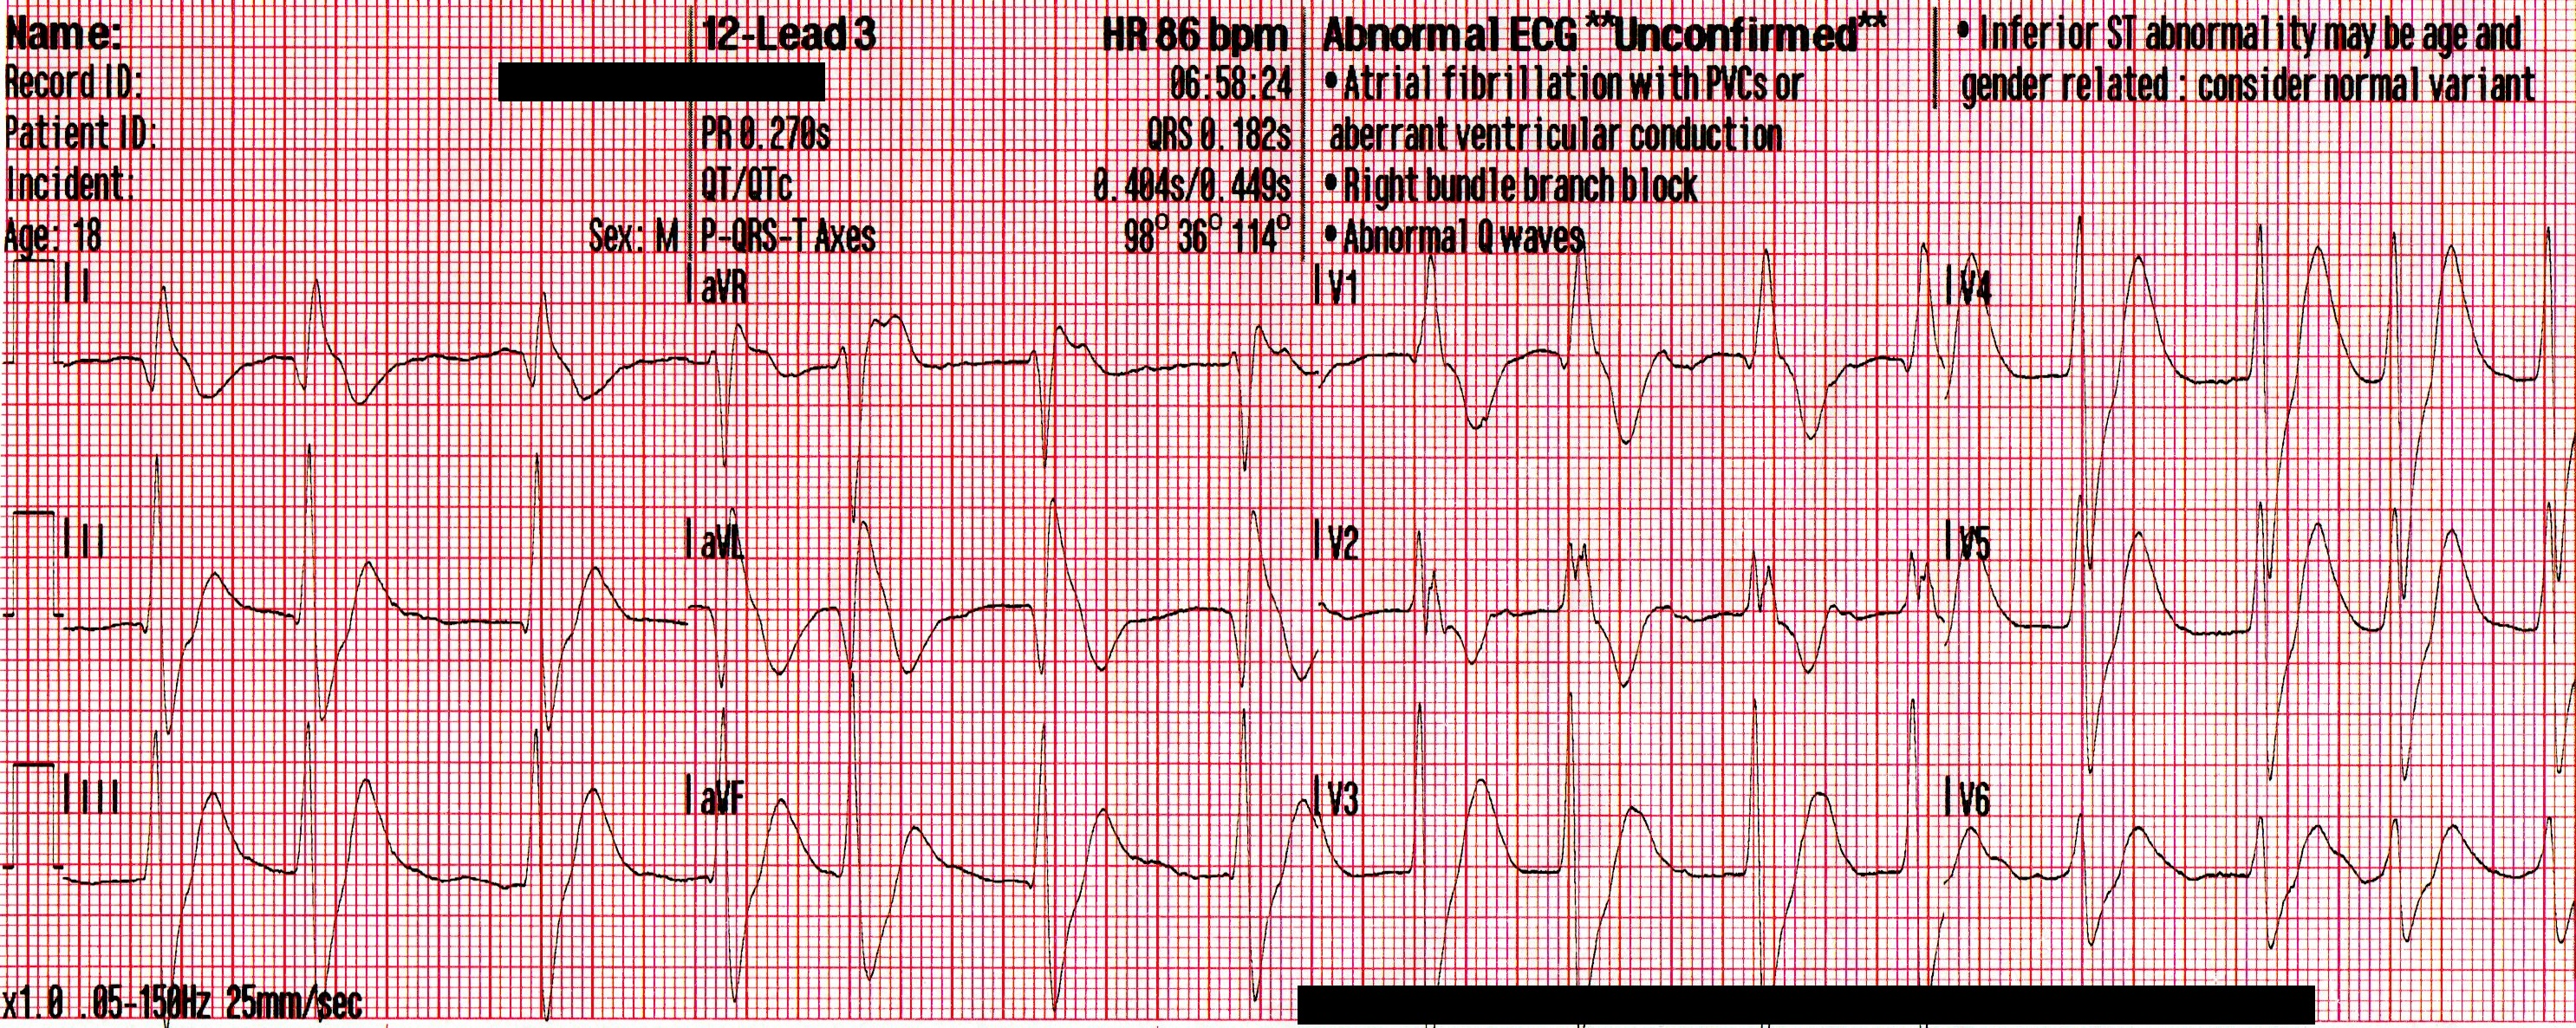 Mixed Overdose and Na-Channel Blockade - ACLS Medical Training